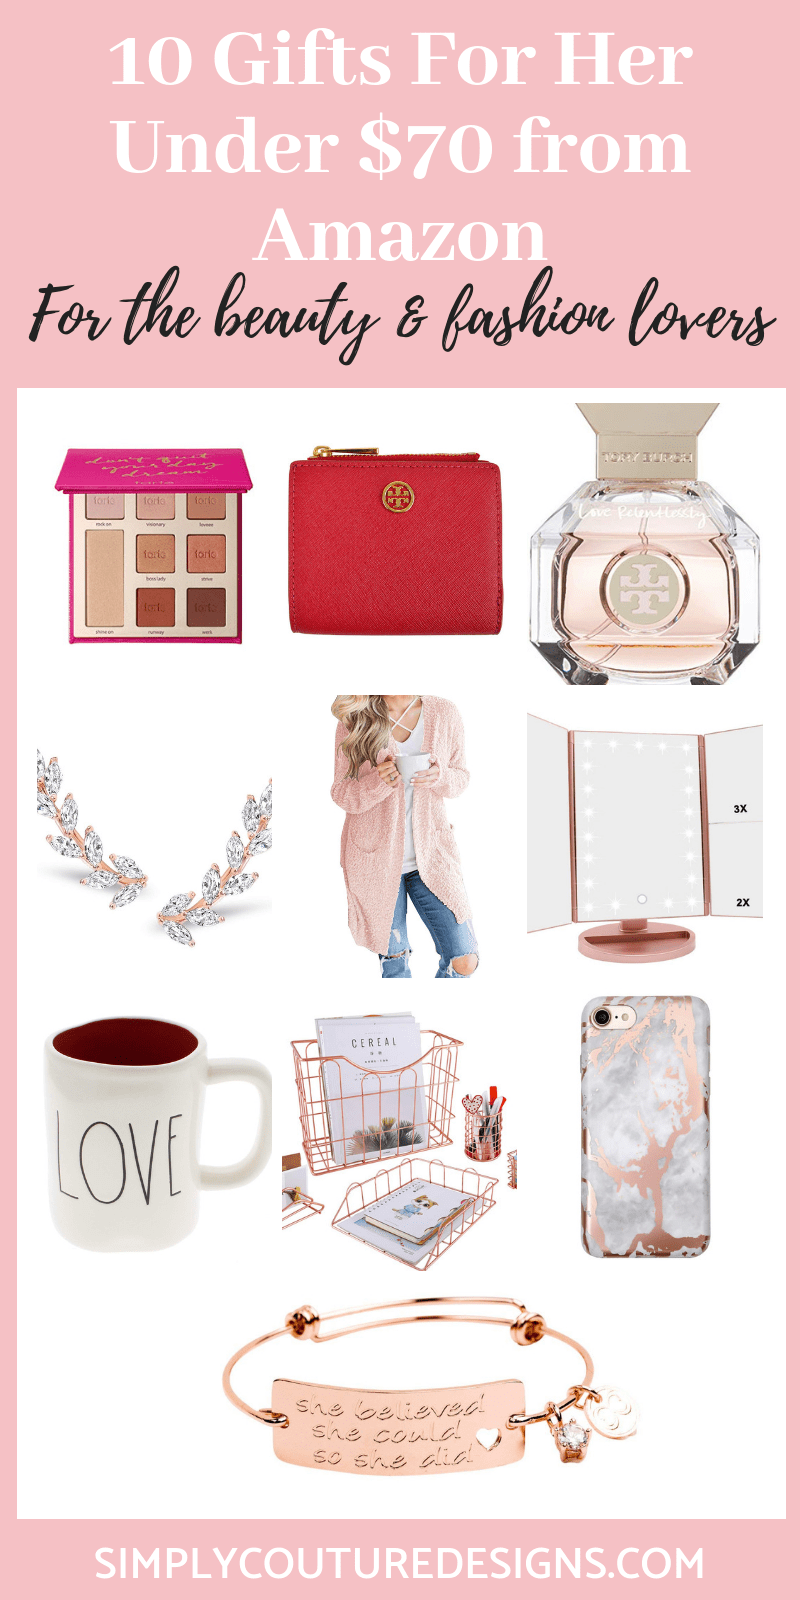 10 Girly Gift Ideas For Her That You Can Find At Amazon